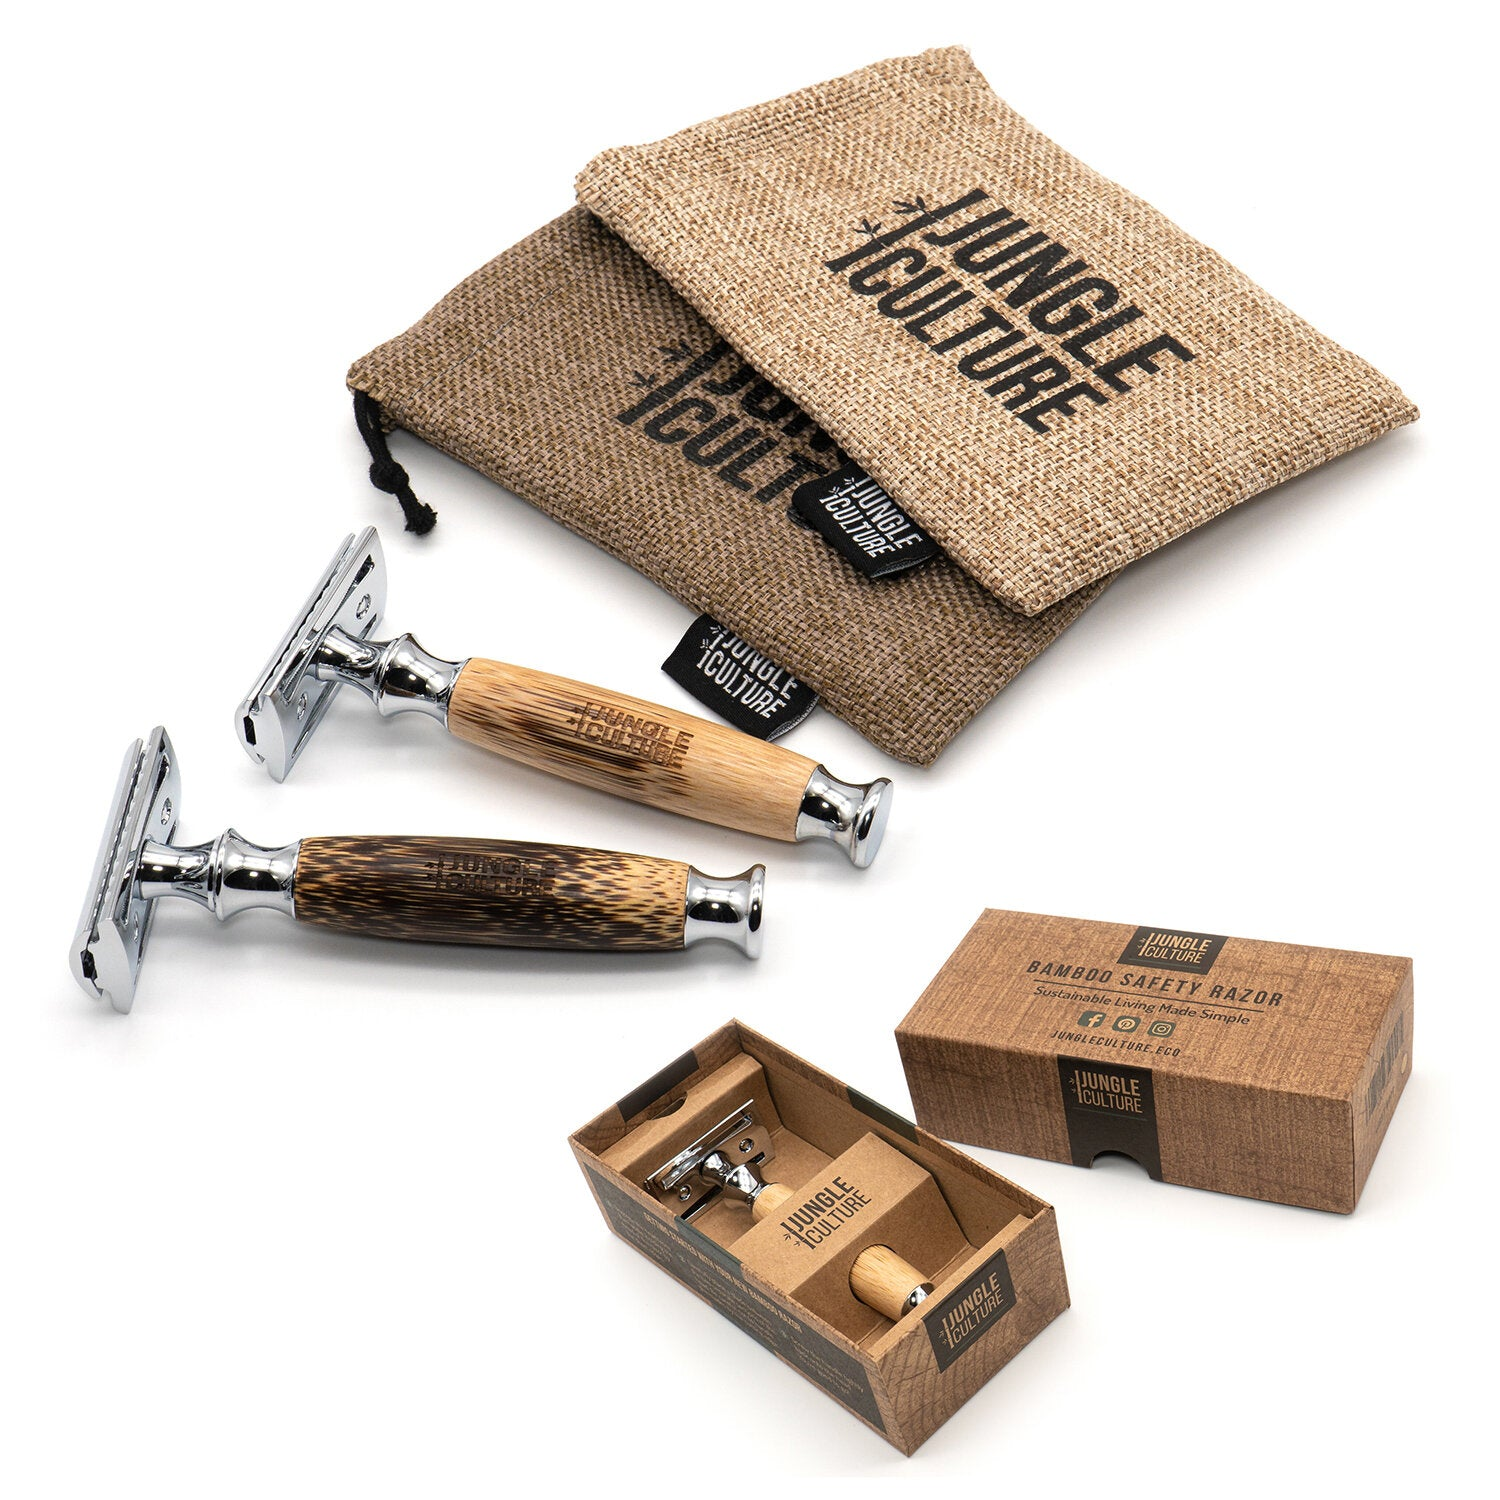 UNISEX BAMBOO SAFETY RAZOR & HESSIAN TRAVEL BAG, PLASTIC FREE, ZERO WASTE (NO BLADE INCLUDED) - natoorio